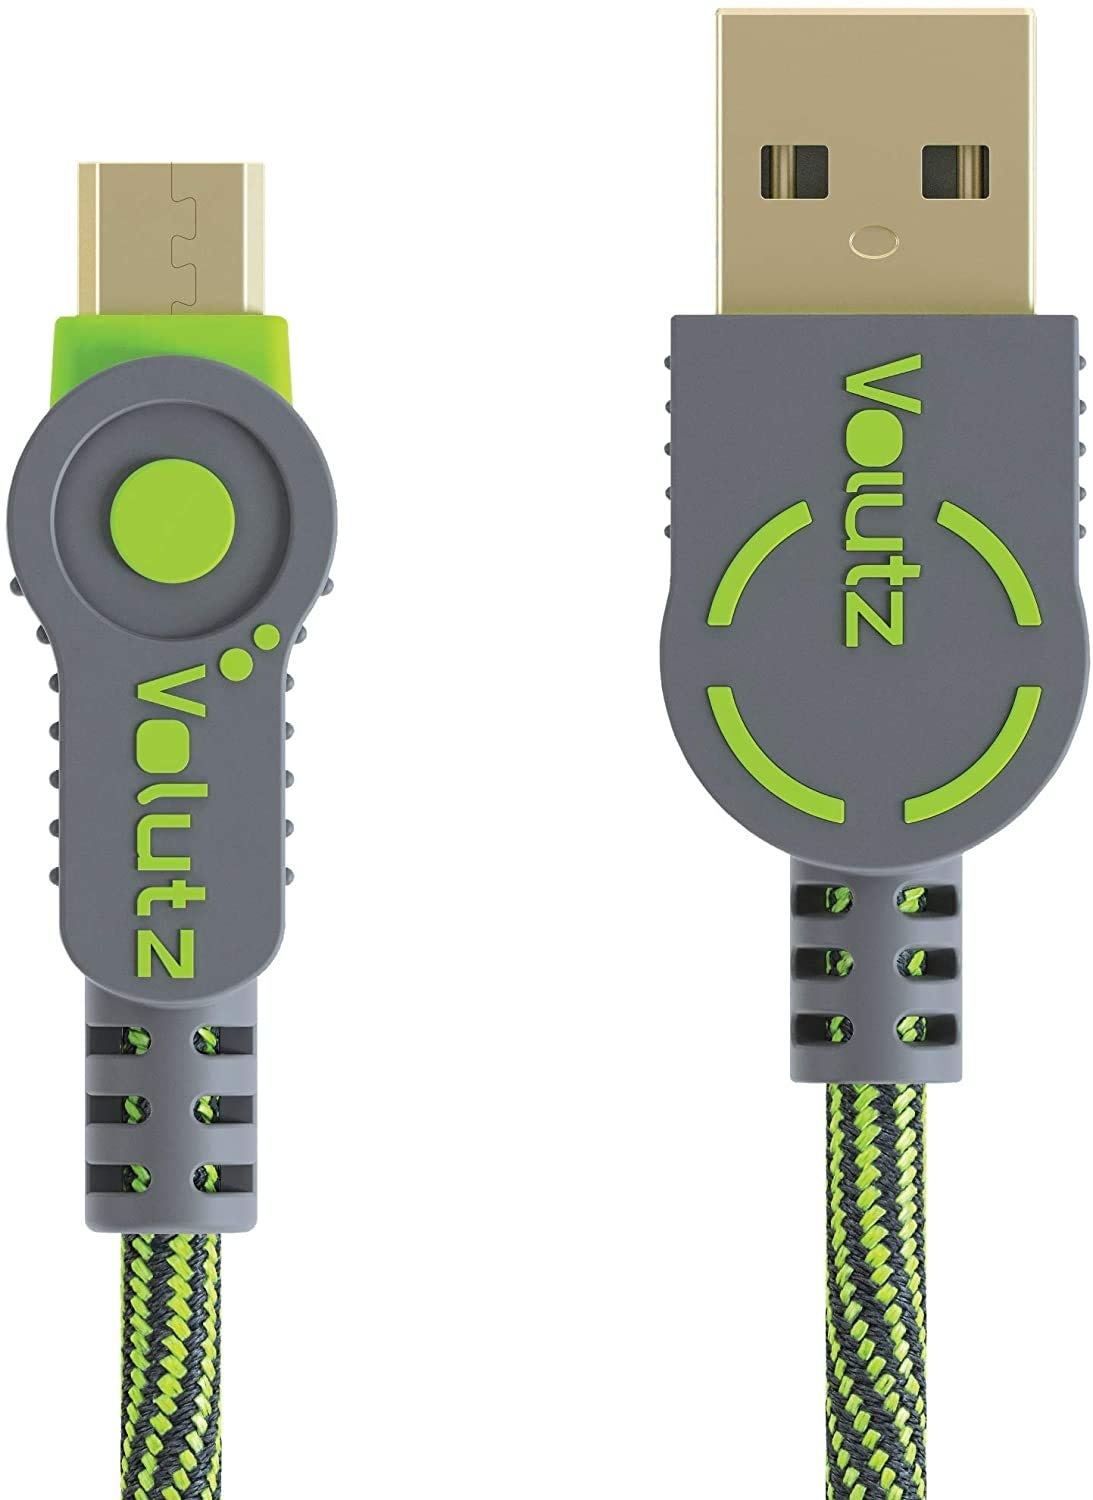 Volutz Micro USB Cable 10ft Extra Long Charging Cable for PS4 Controller, Braided Durable Fast Charger Cord for Samsung Galaxy S6 S7, Sony, LG, Kindle, Xbox One - 3M Moss Green - [ArmorCord]